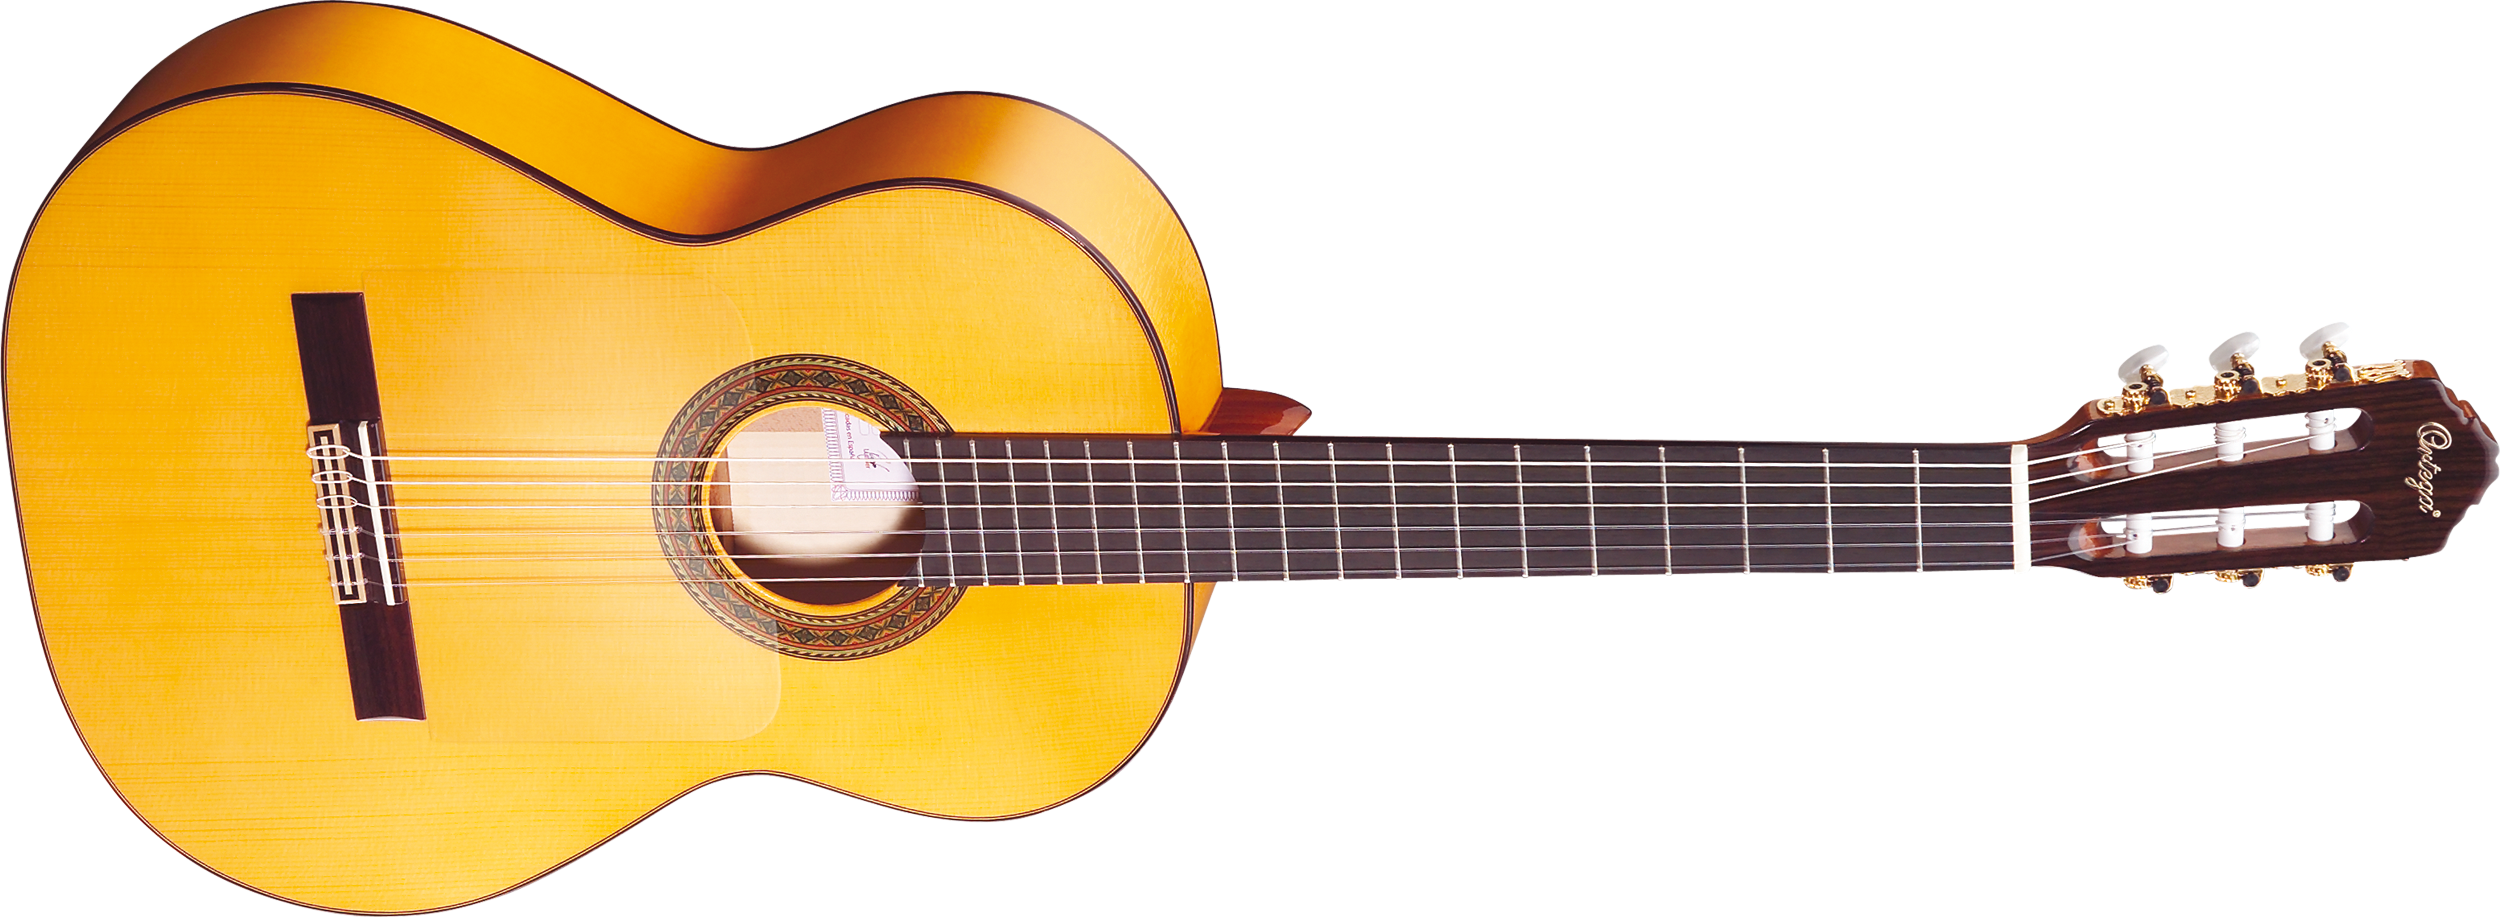 Background clipart guitar #9